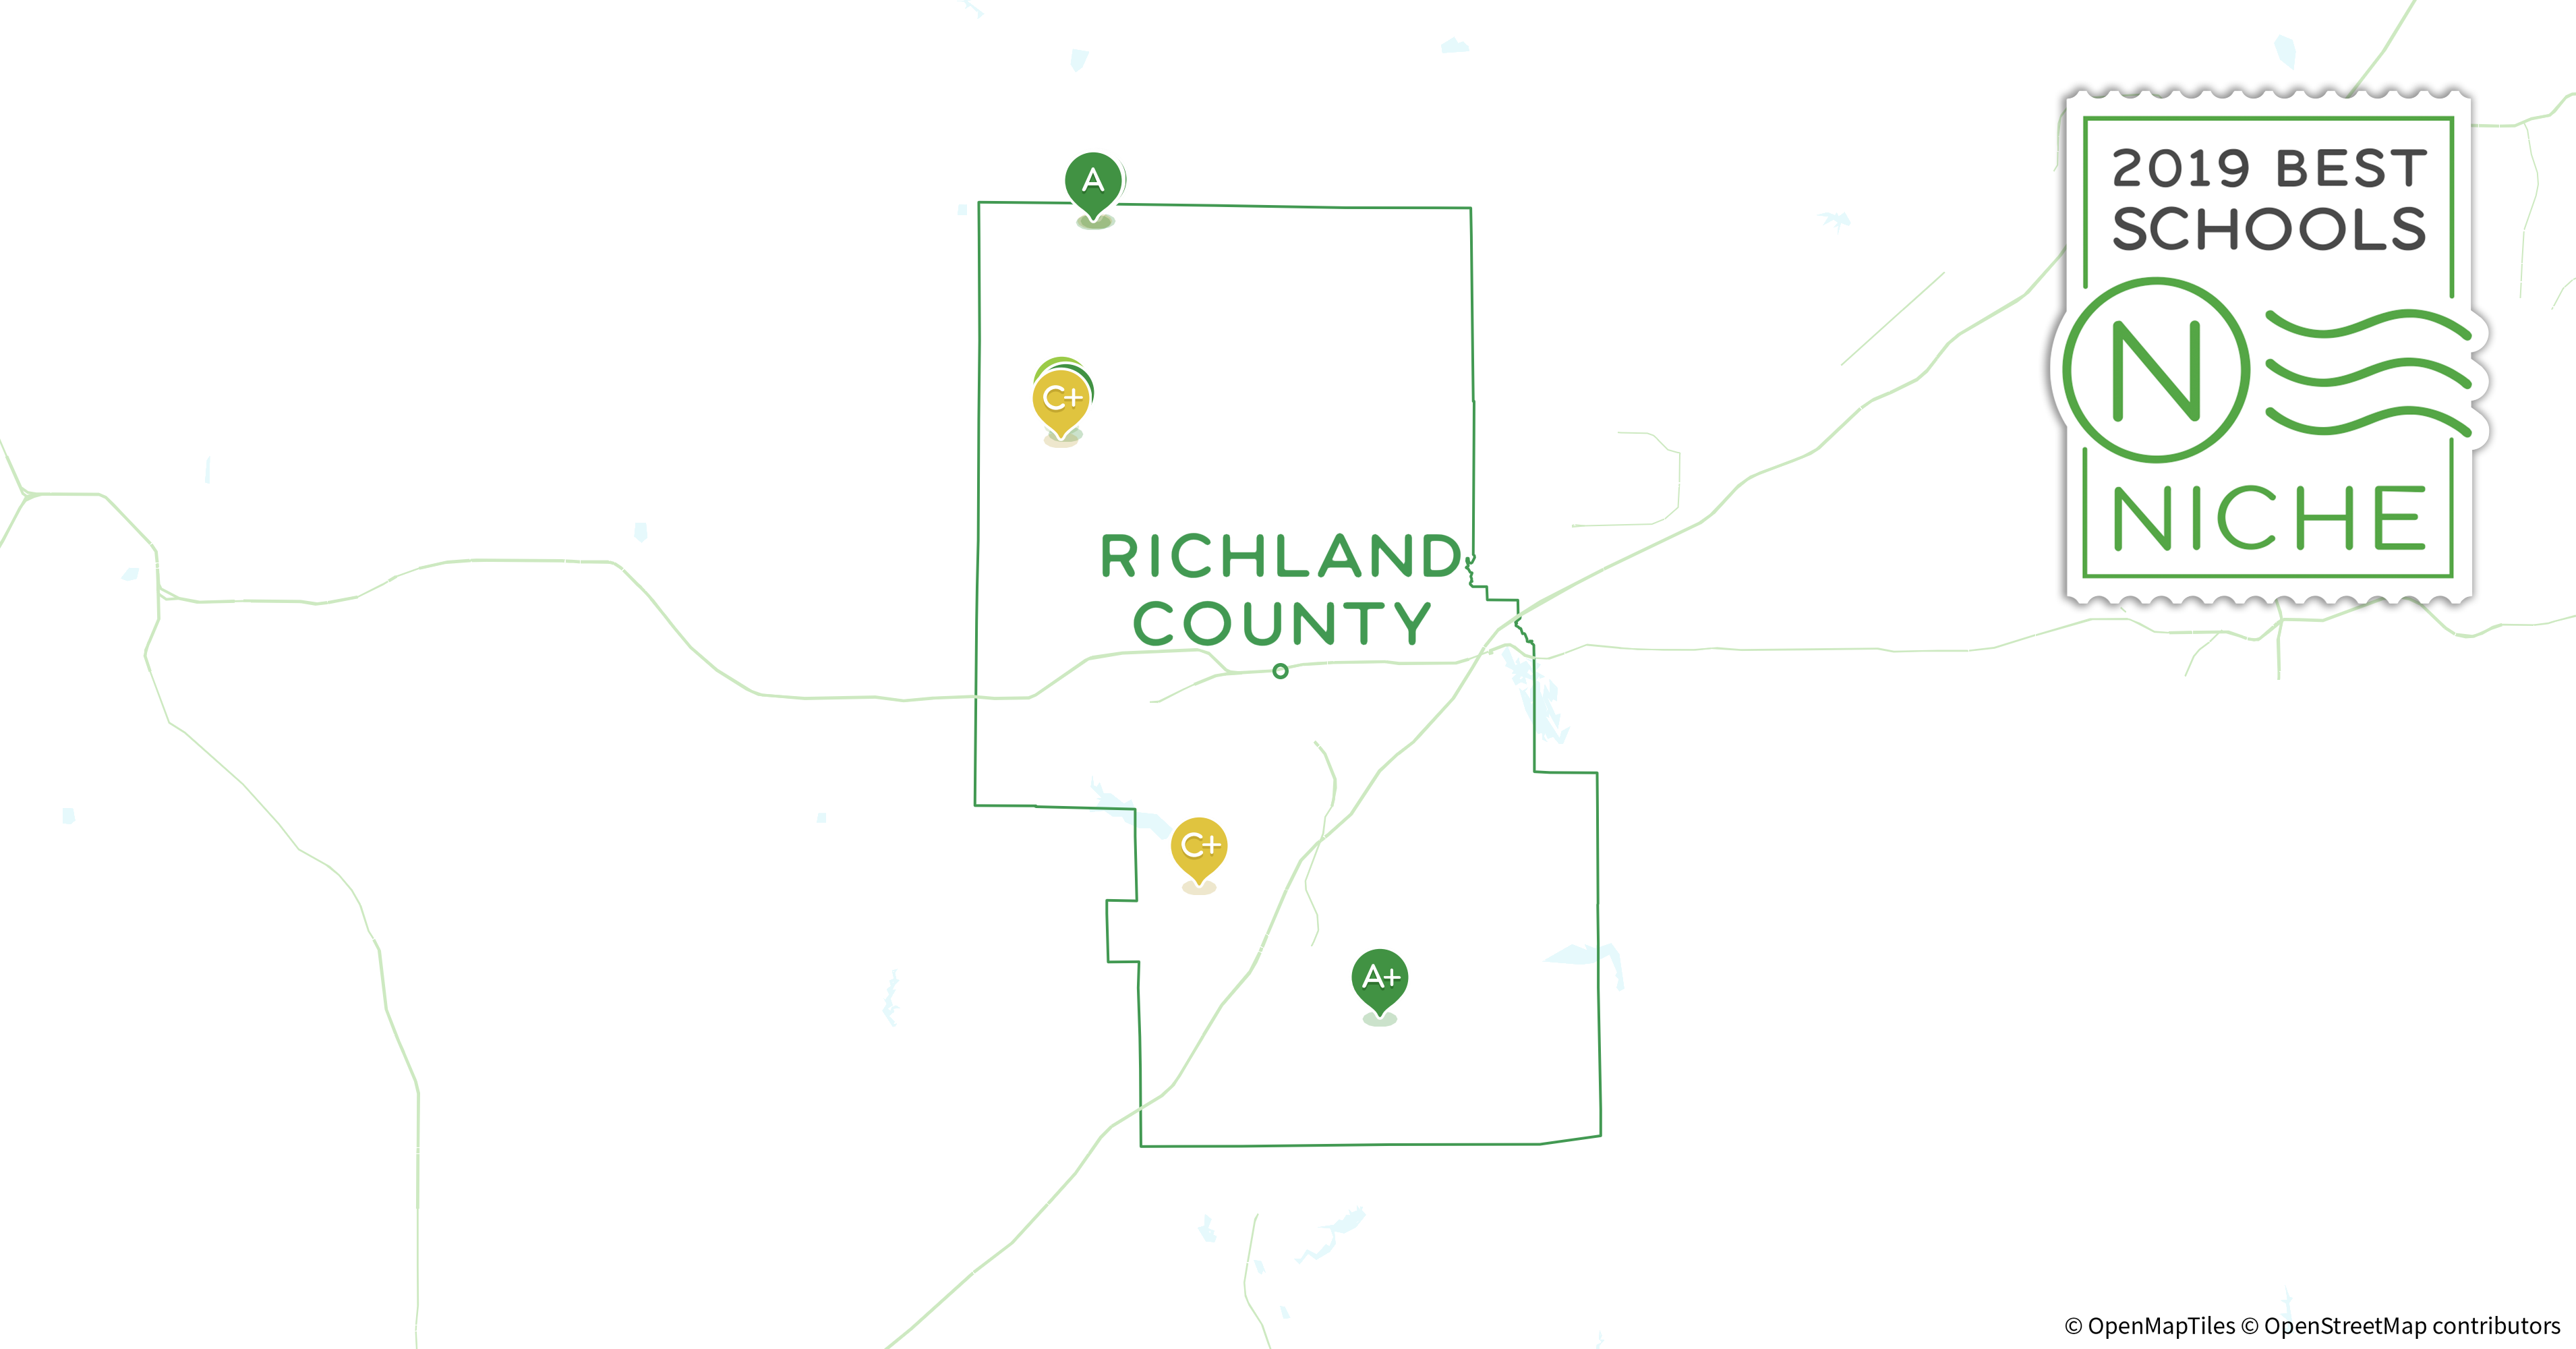 School Districts in Richland County, OH - Niche